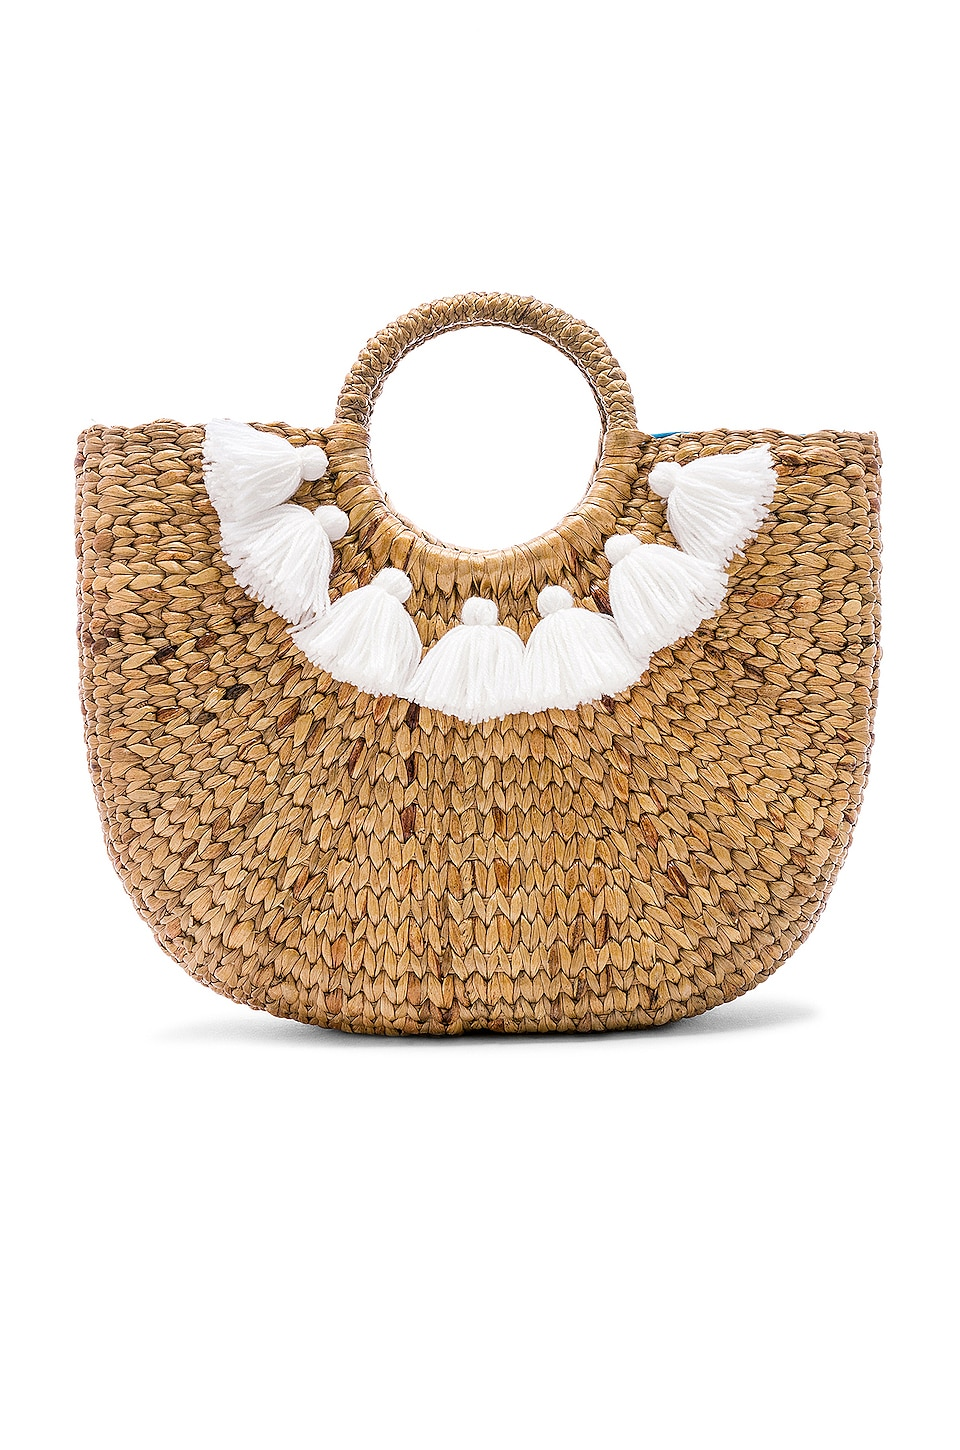 JADEtribe Small 7 Tassel Basket in White